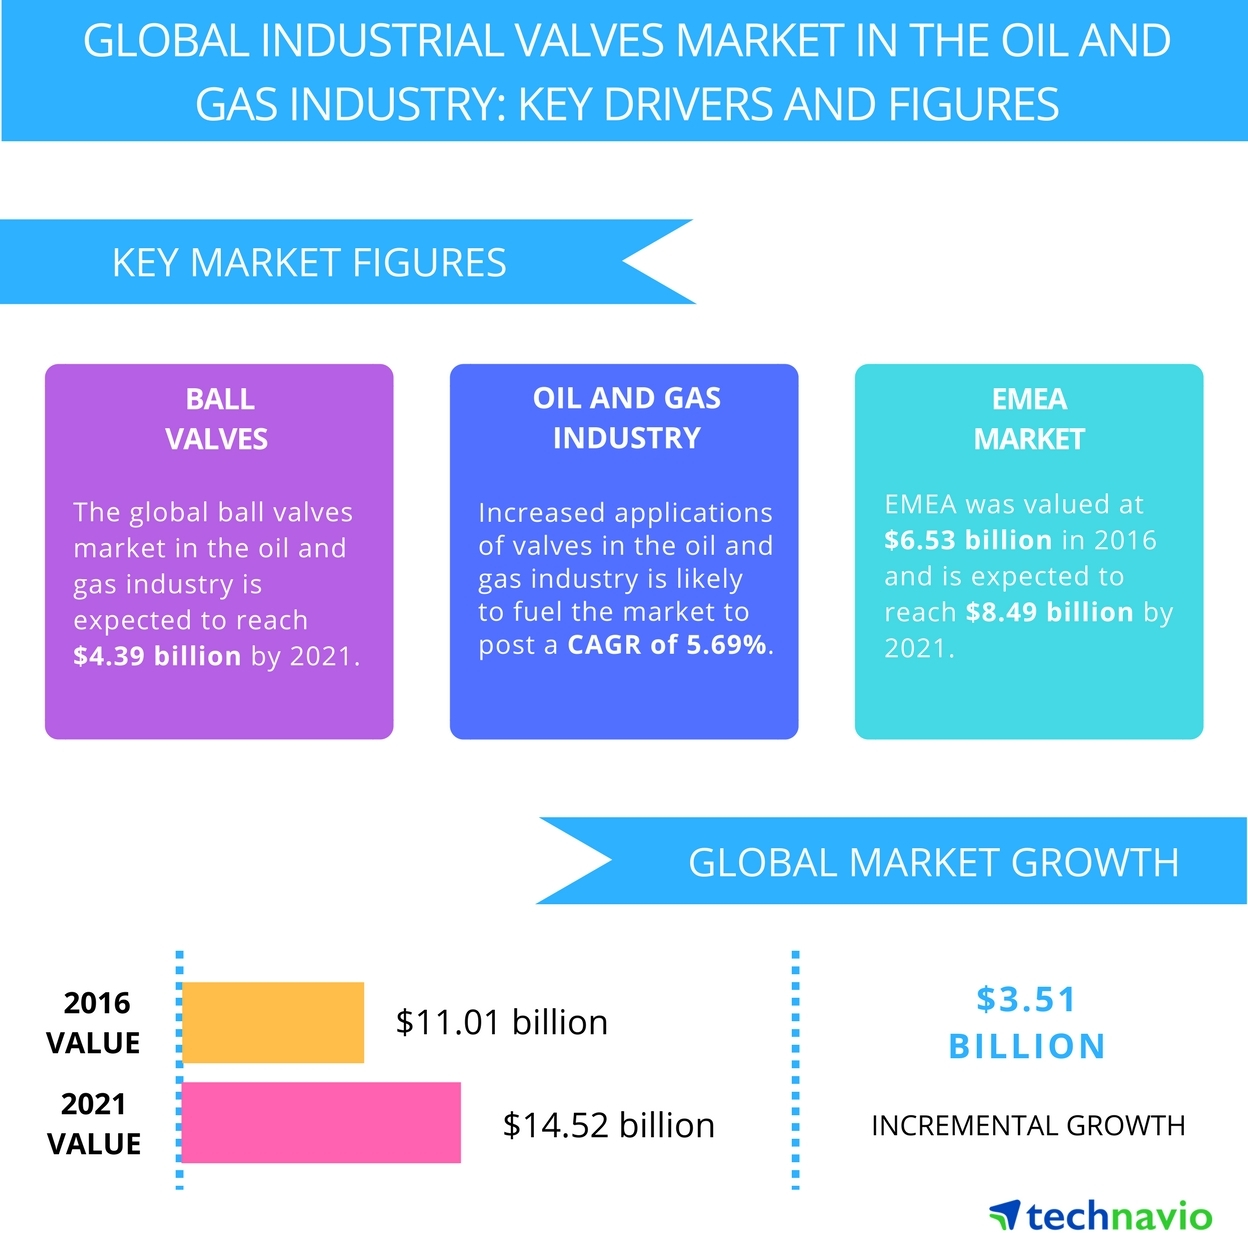 Technavio has published a new report on the global industrial valves market in the oil and gas industry from 2017-2021. (Graphic: Business Wire)